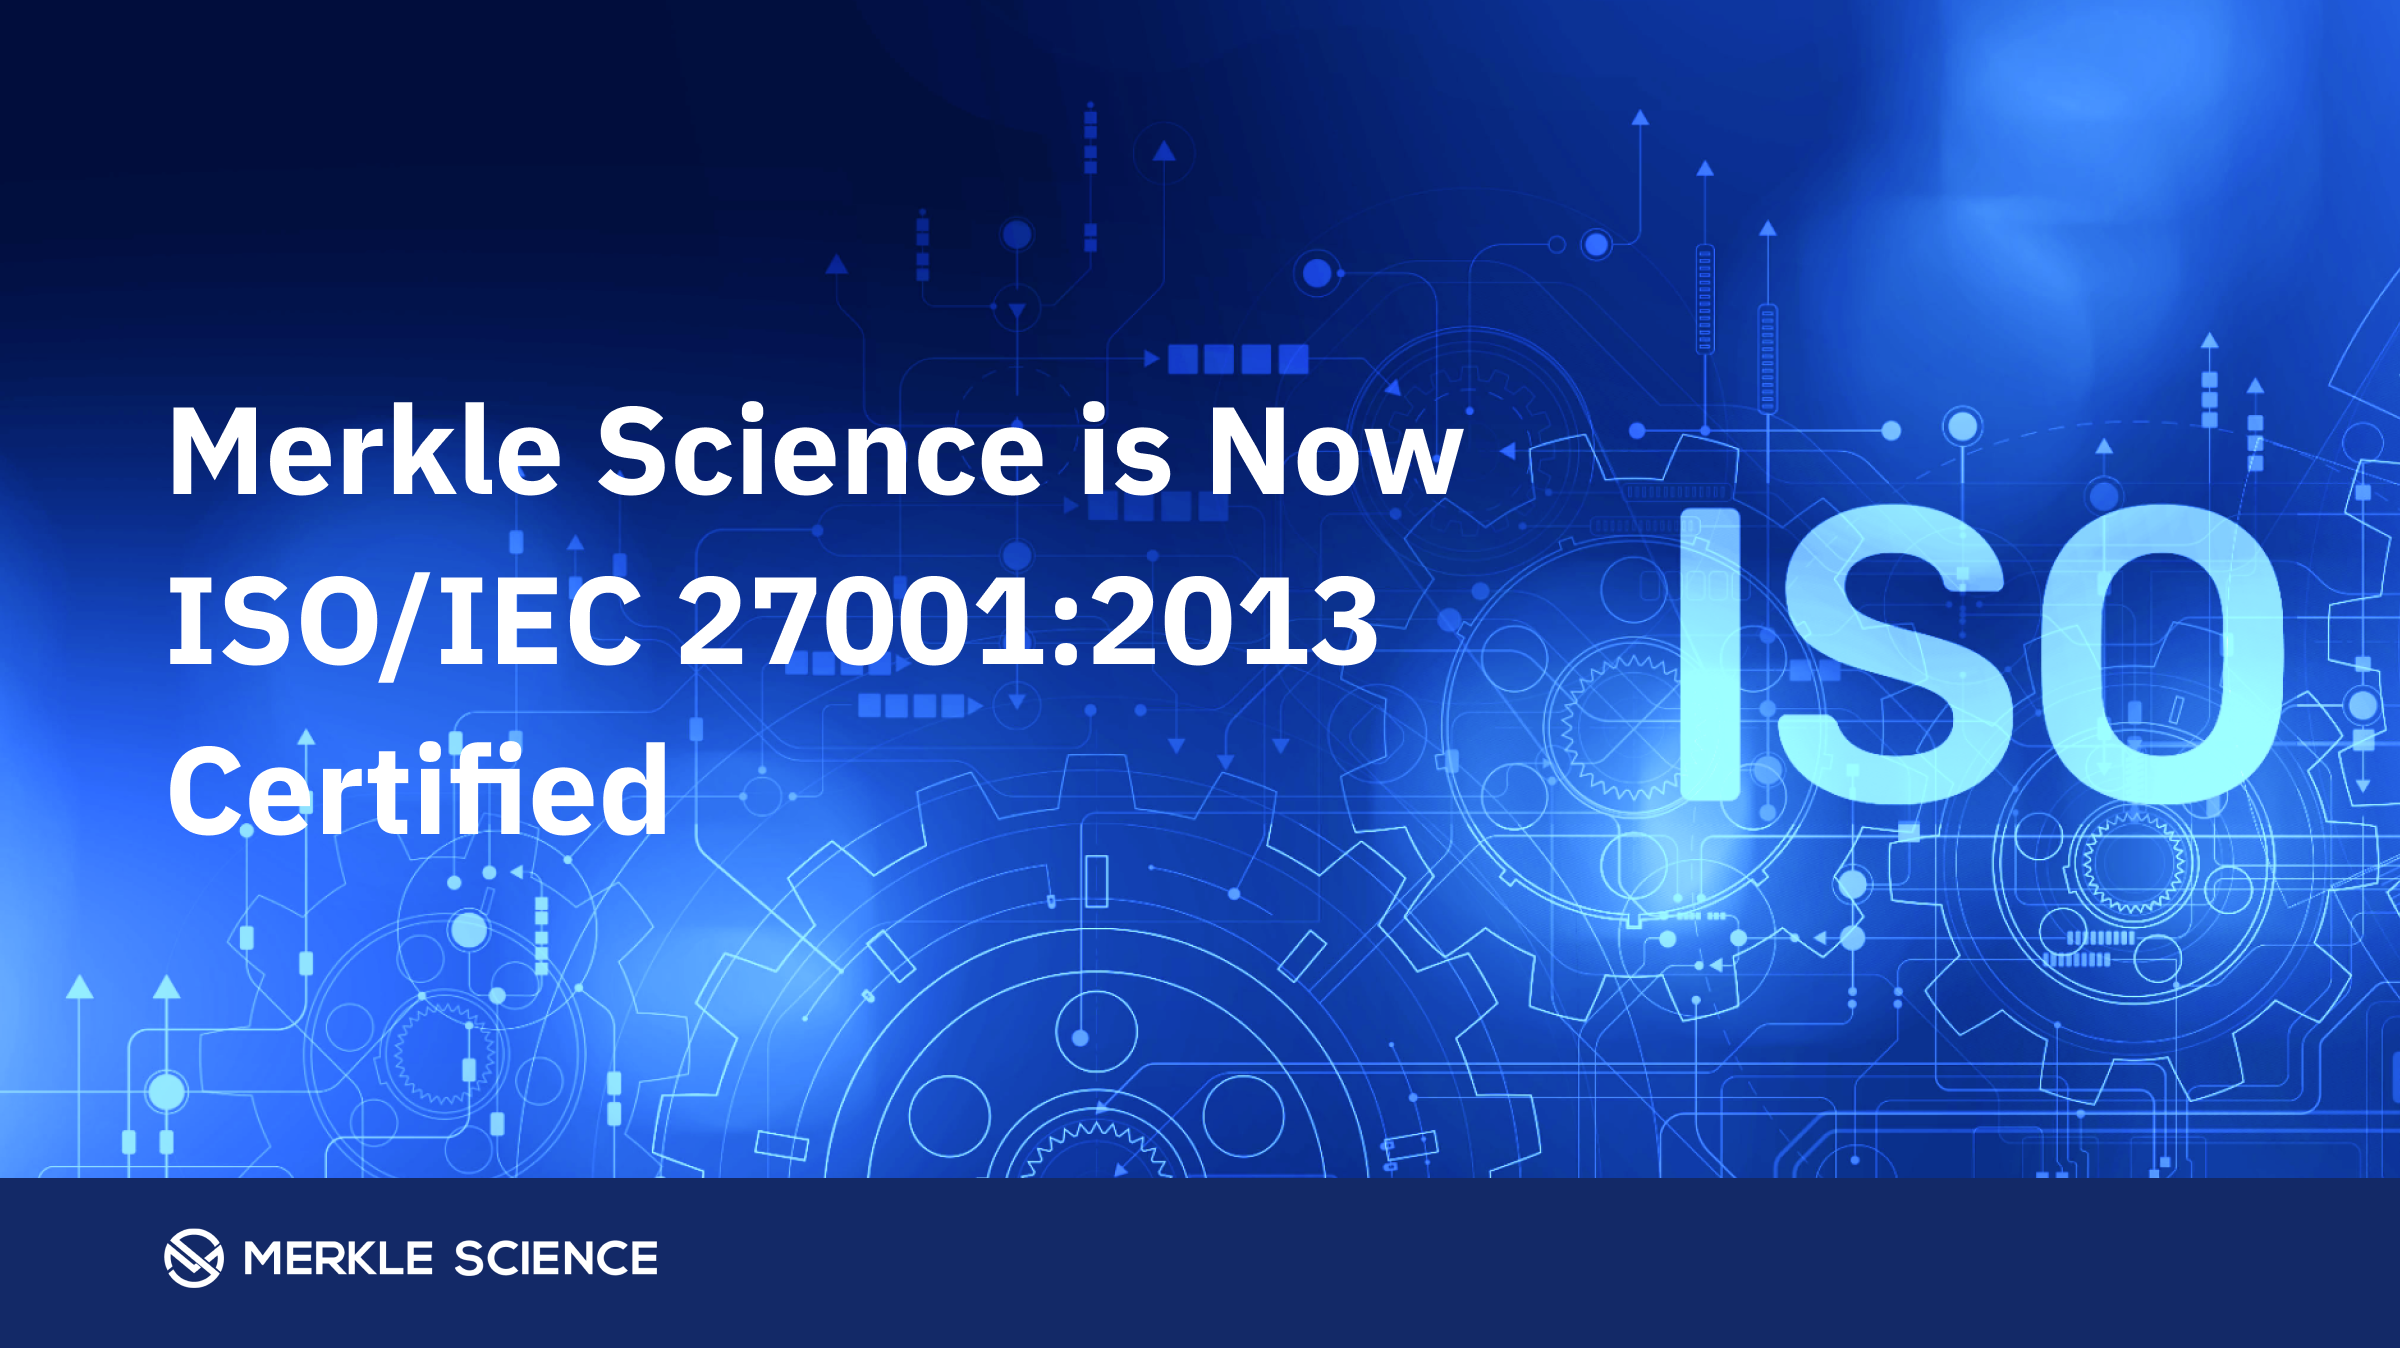 Merkle Science is ISO/IEC 27001:2013 Certified for Robust IT Security